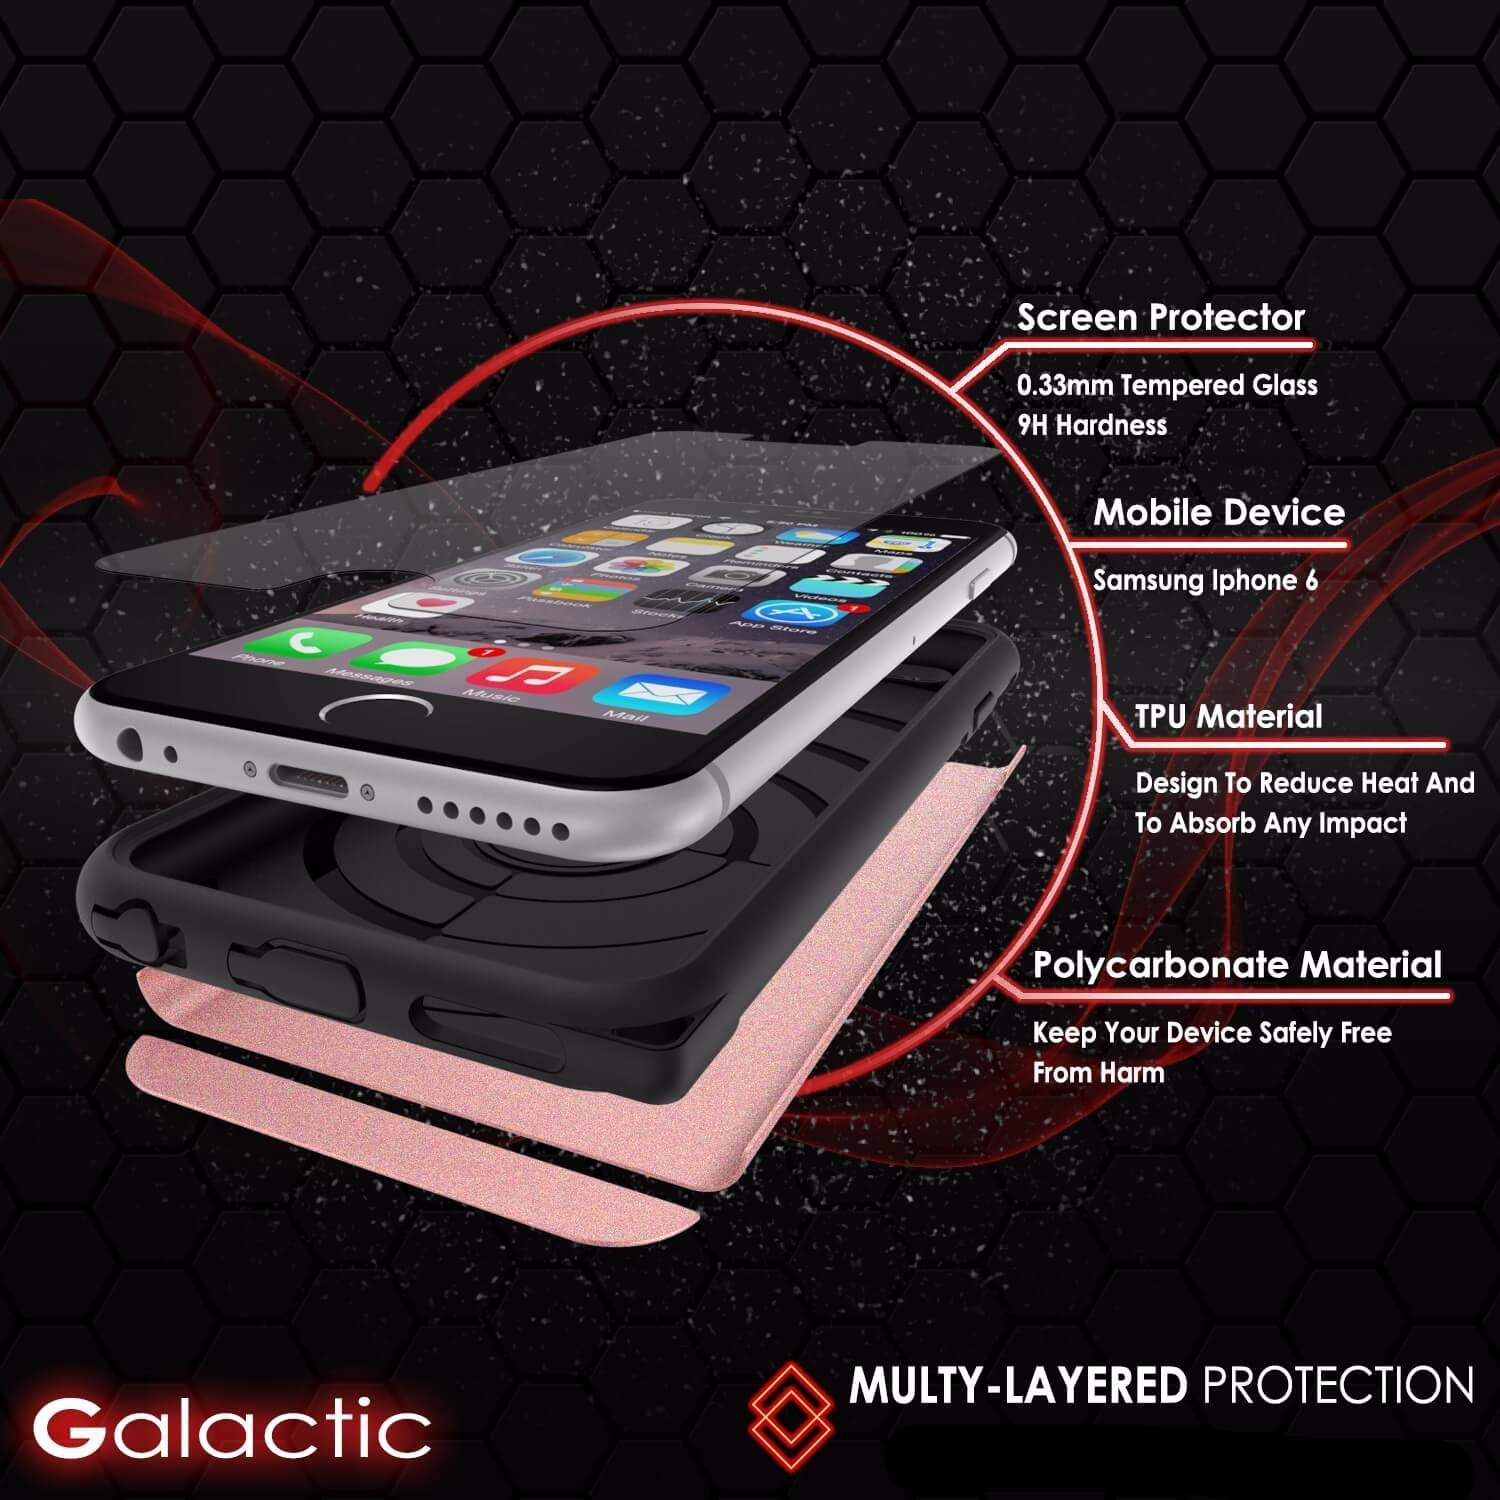 iPhone 5s/5/SE Case PunkCase Galactic RoseGold Series Slim w/ Tempered Glass | Lifetime Warranty